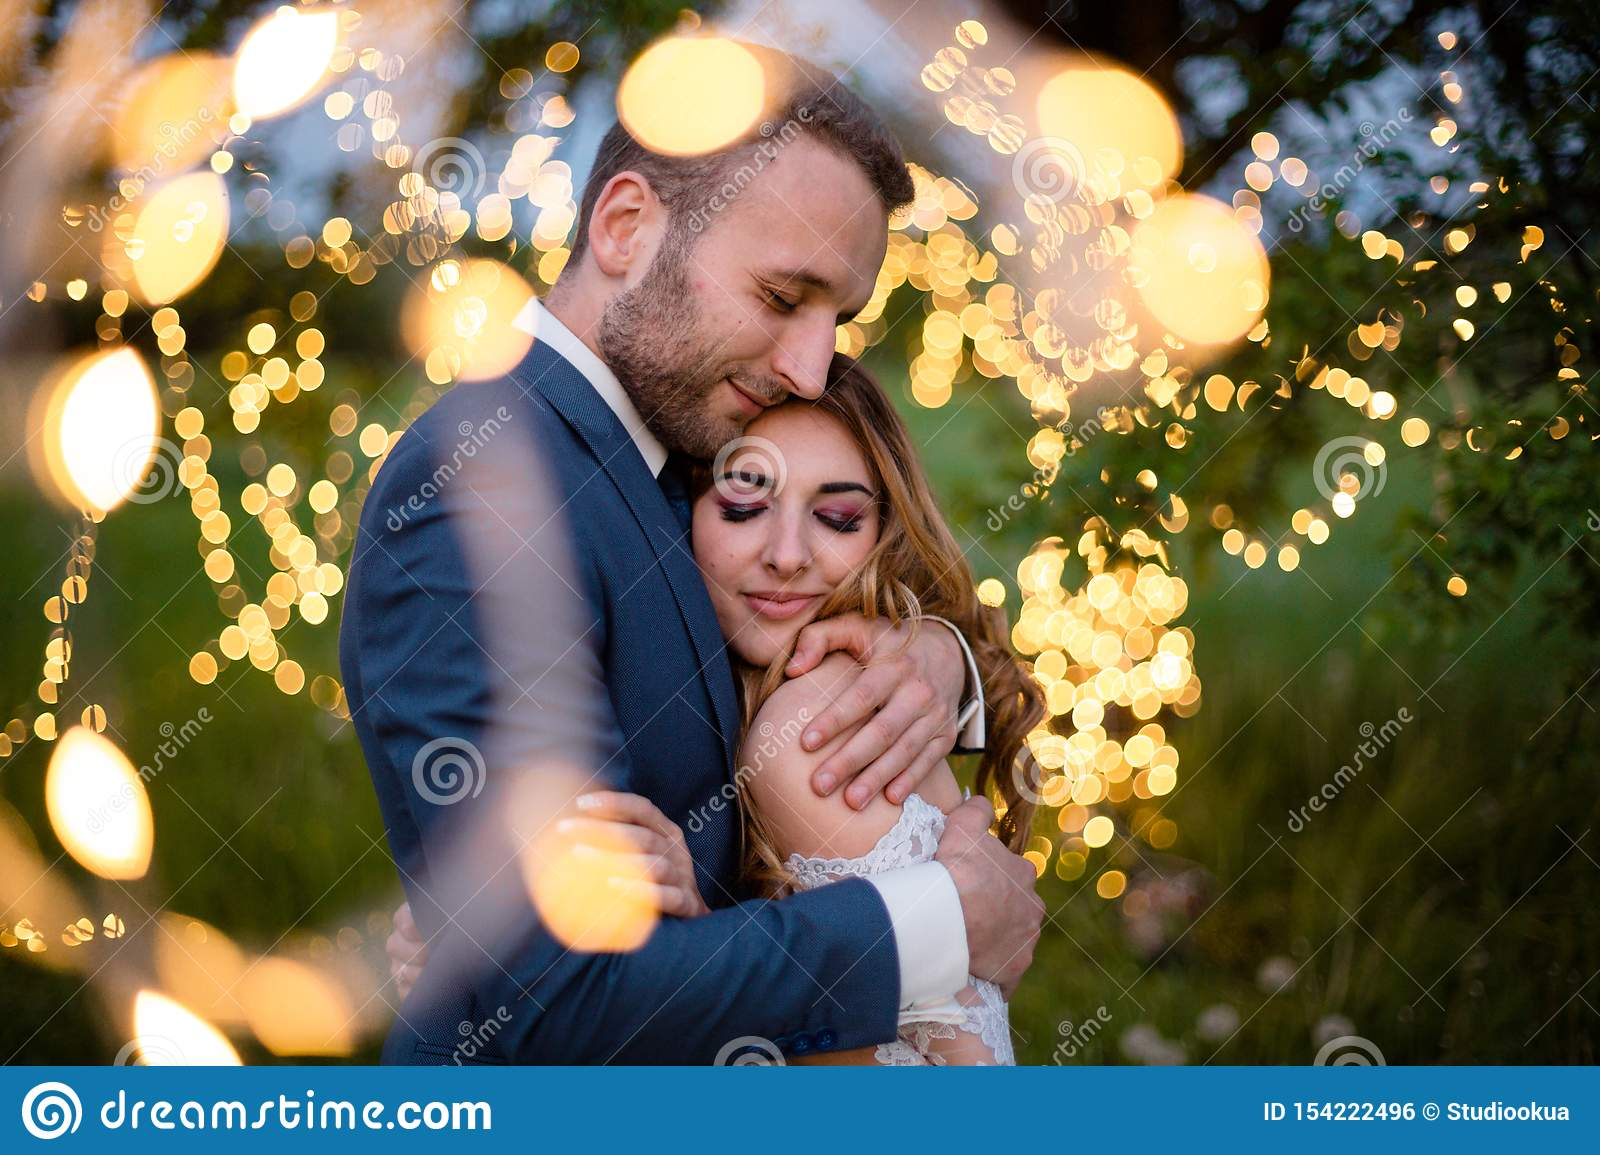 Enamored newlyweds gently embrace. Wedding ceremony in nature. The lights of the electric garland illuminate the wedding